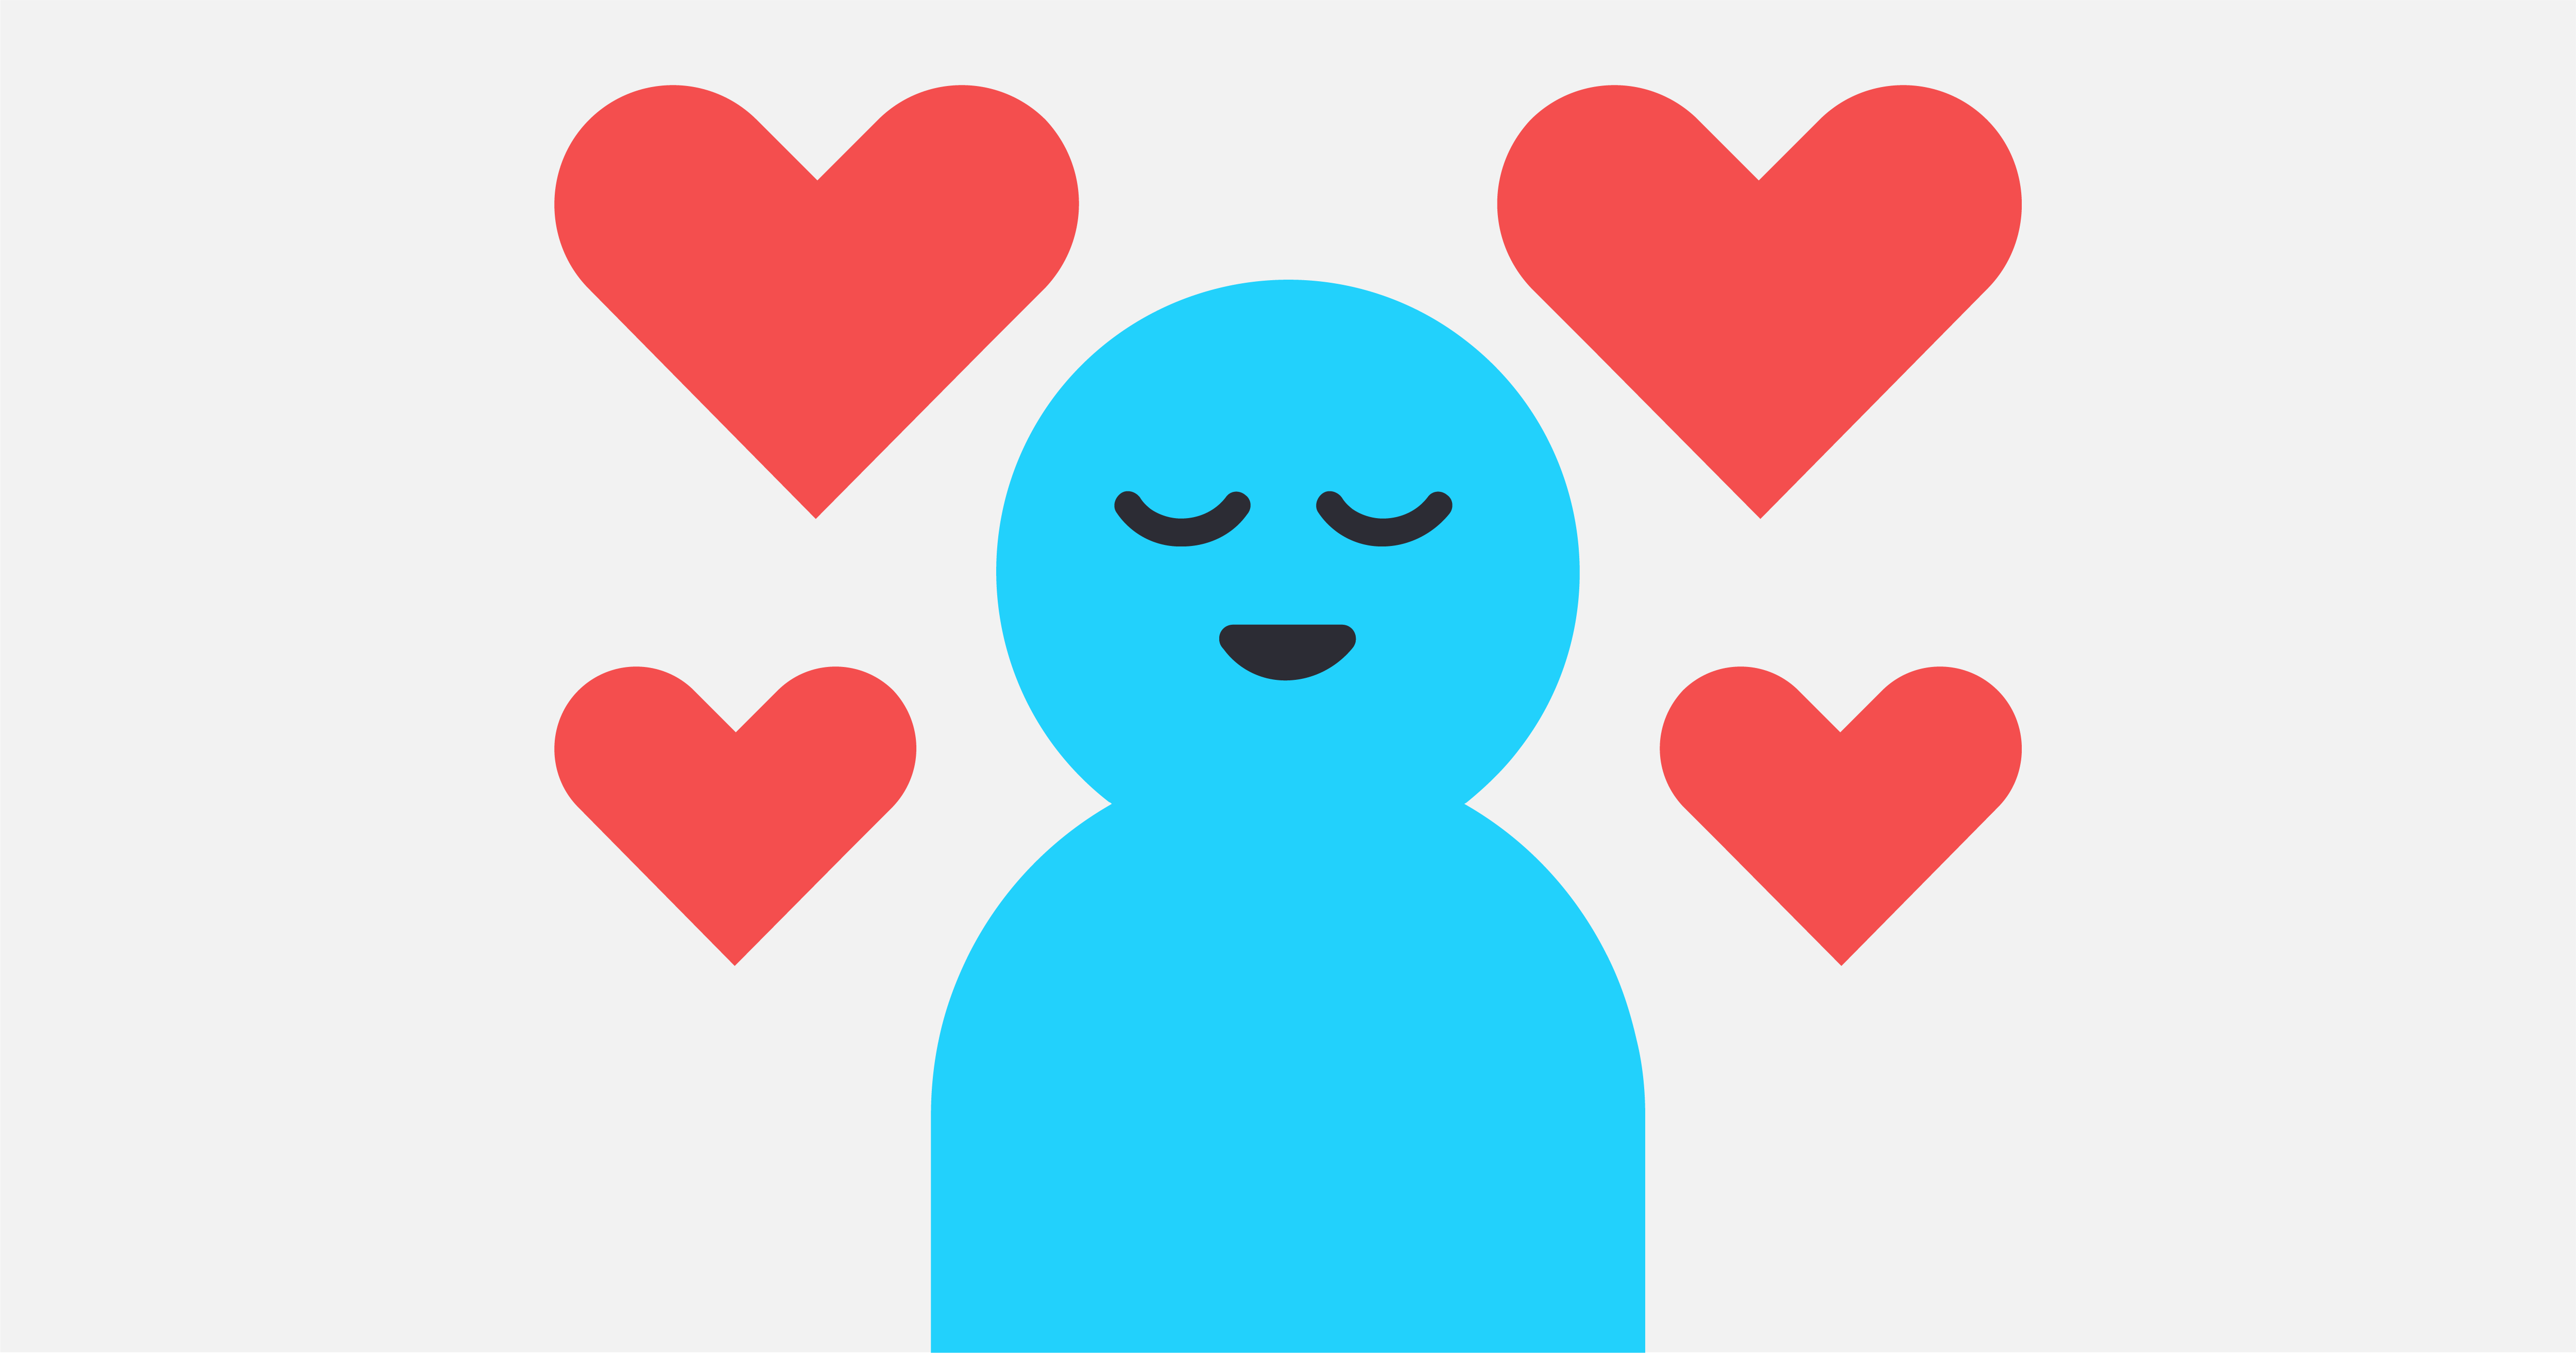 A graphic of a person with hearts around them, substituting a photo for Doug Khorey